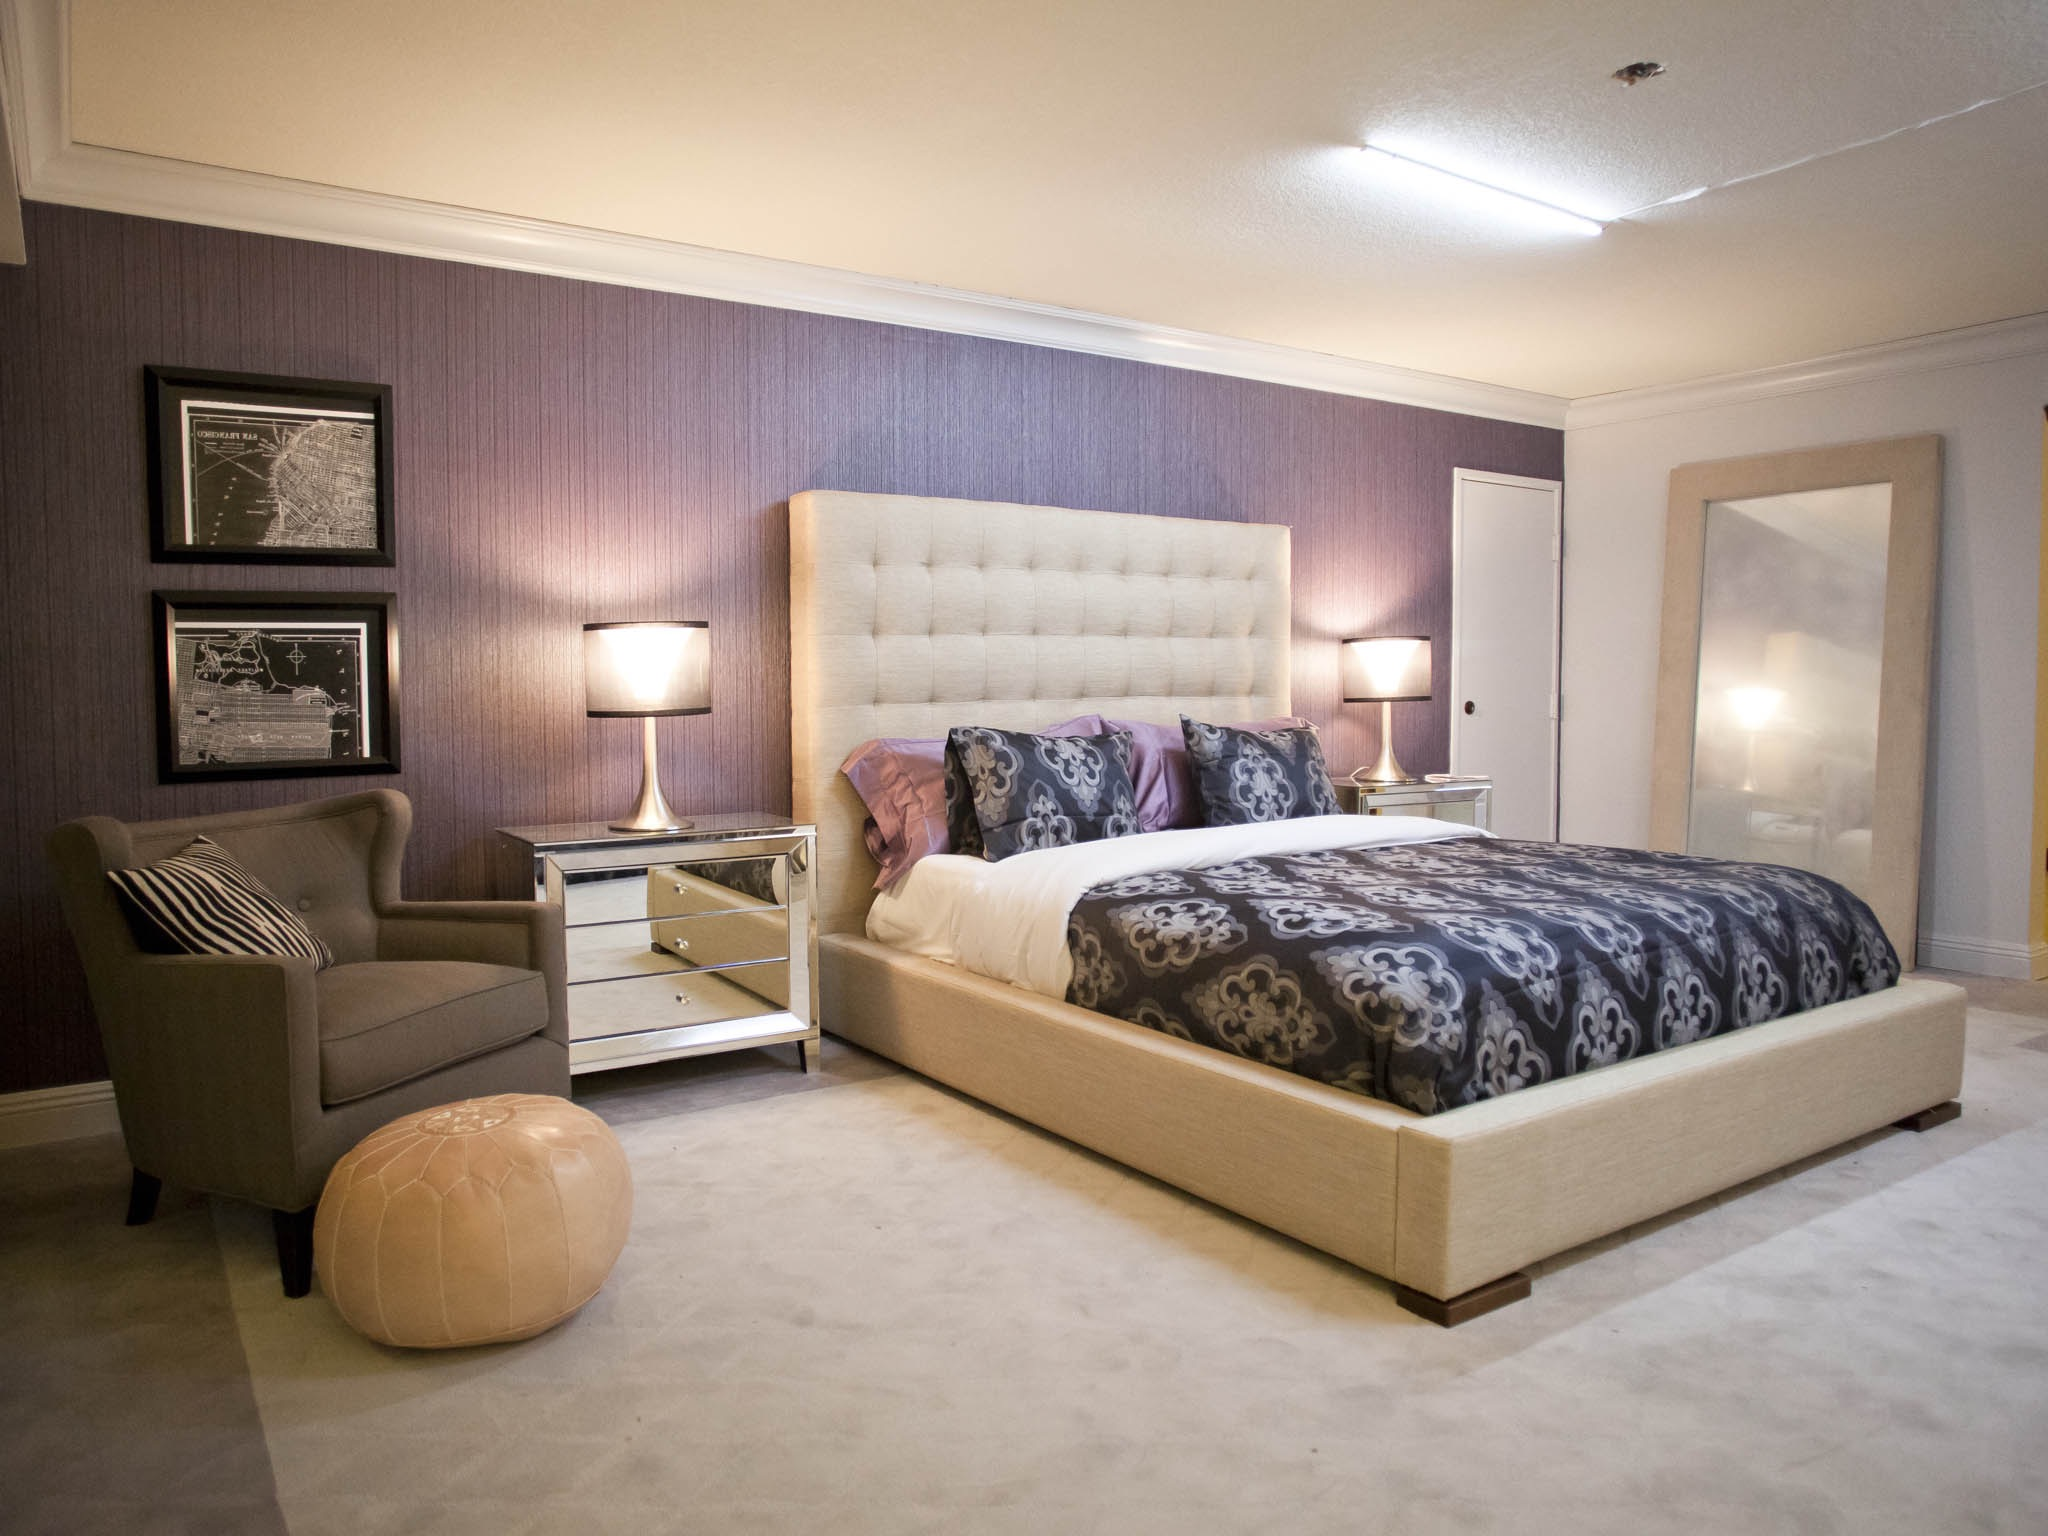 Neutral Contemporary Bedroom With Purple Accent Wall Paint Color (Image 15 of 22)